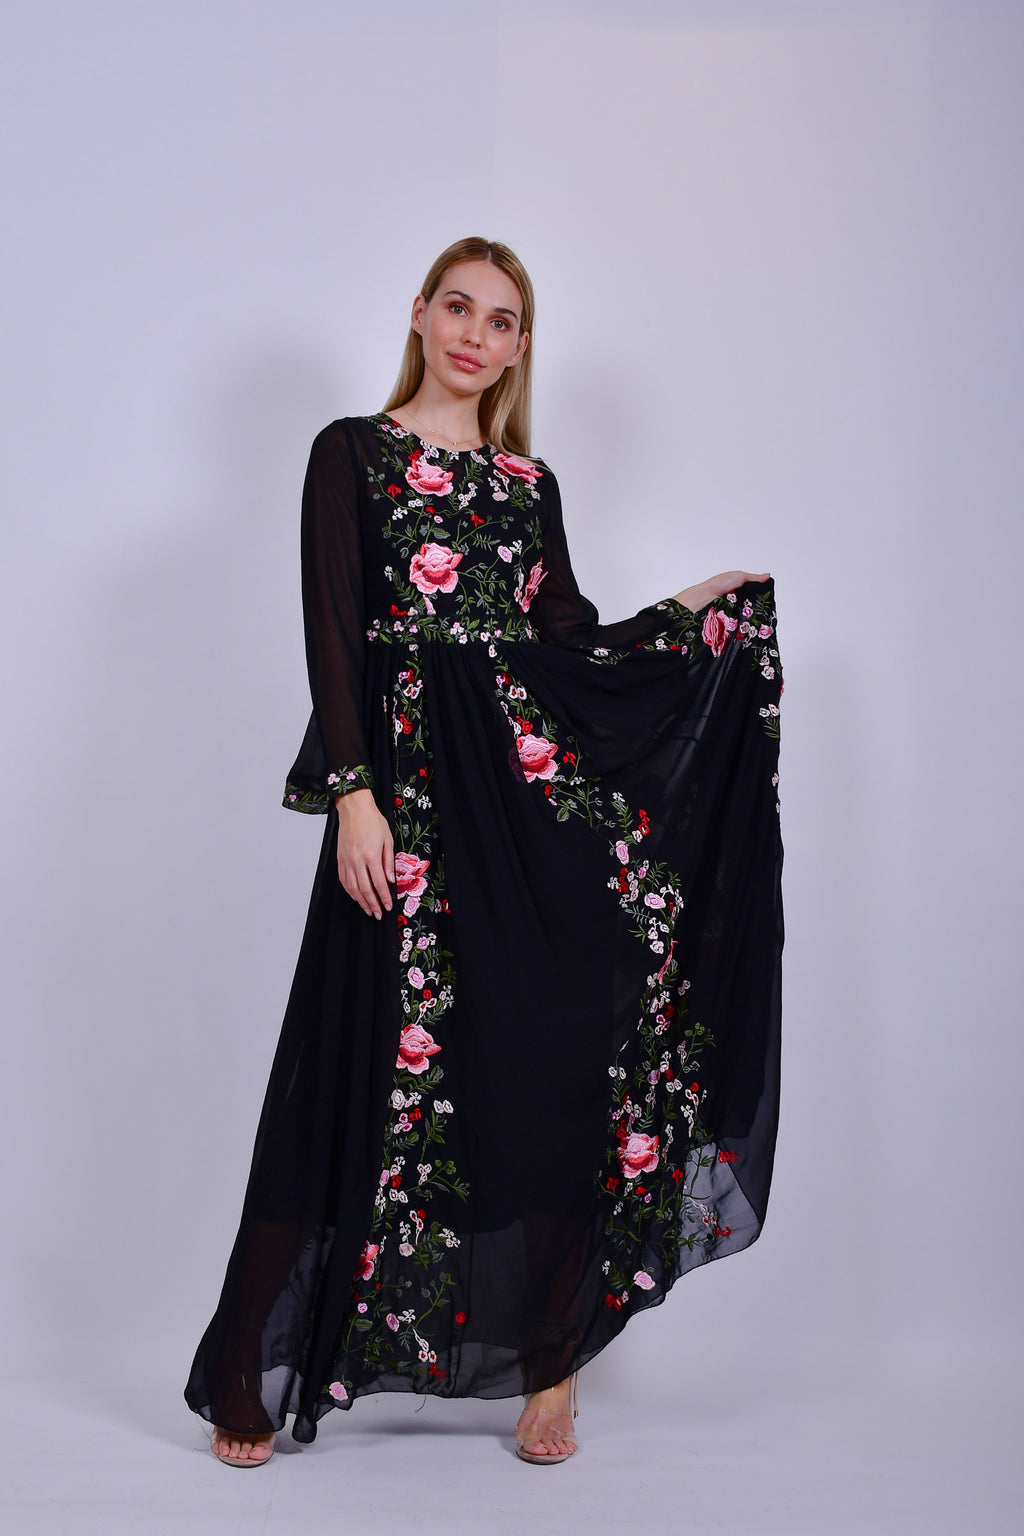 Black Maxi Dress Chiffon with Rose Applique